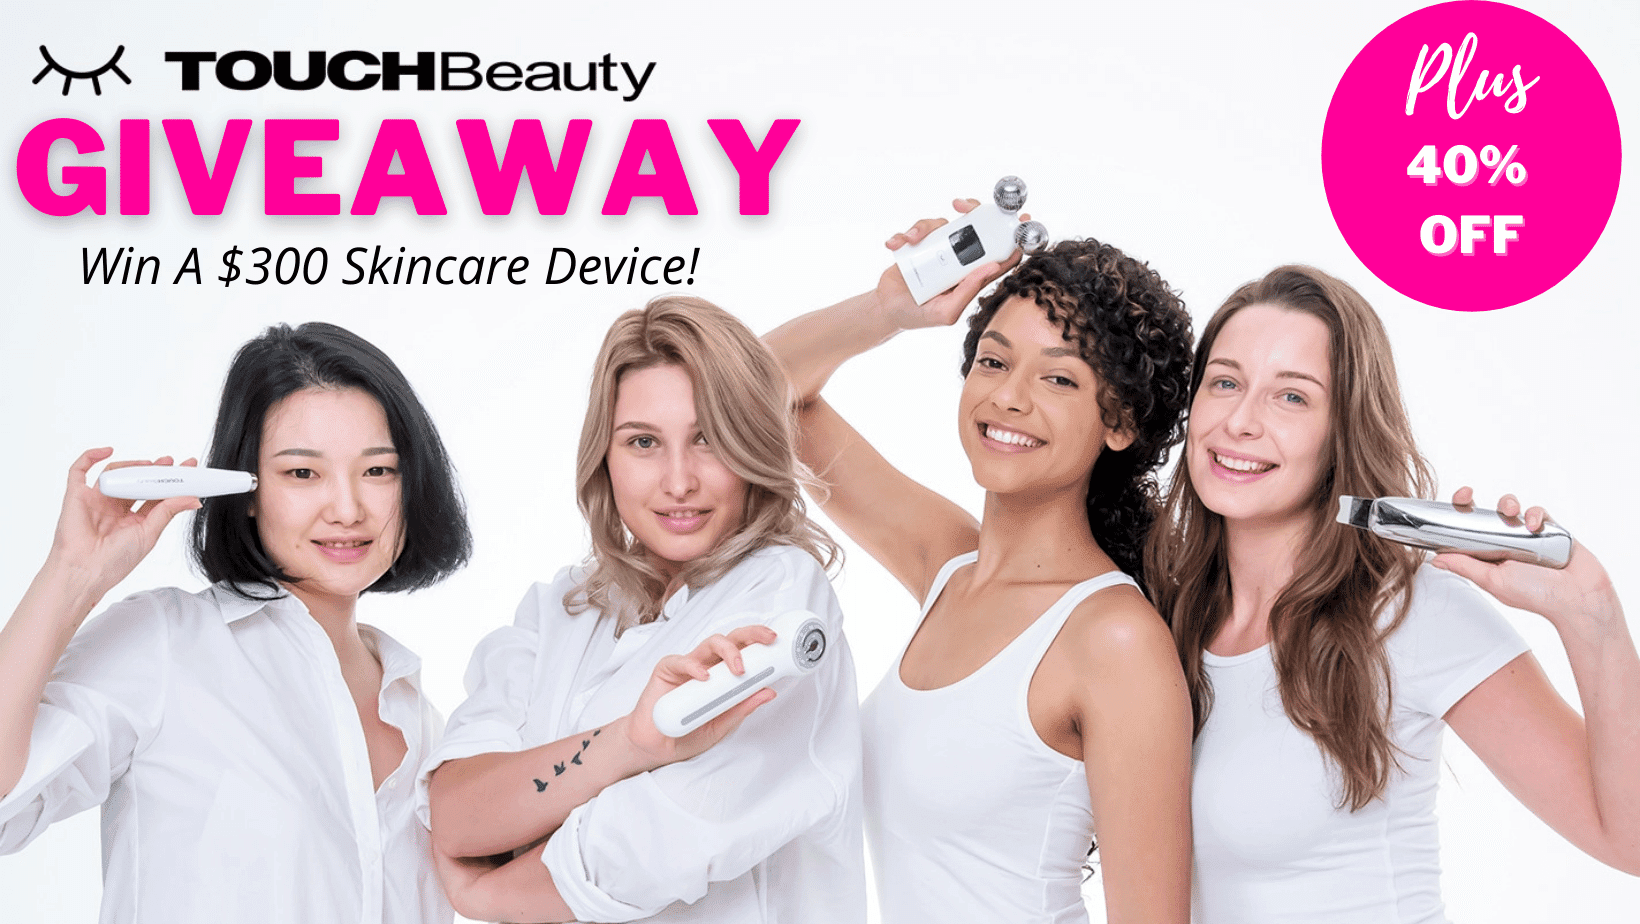 TOUCHBeauty Ultimate Summer Bliss Giveaway And Sale Event By Barbies Beauty Bits